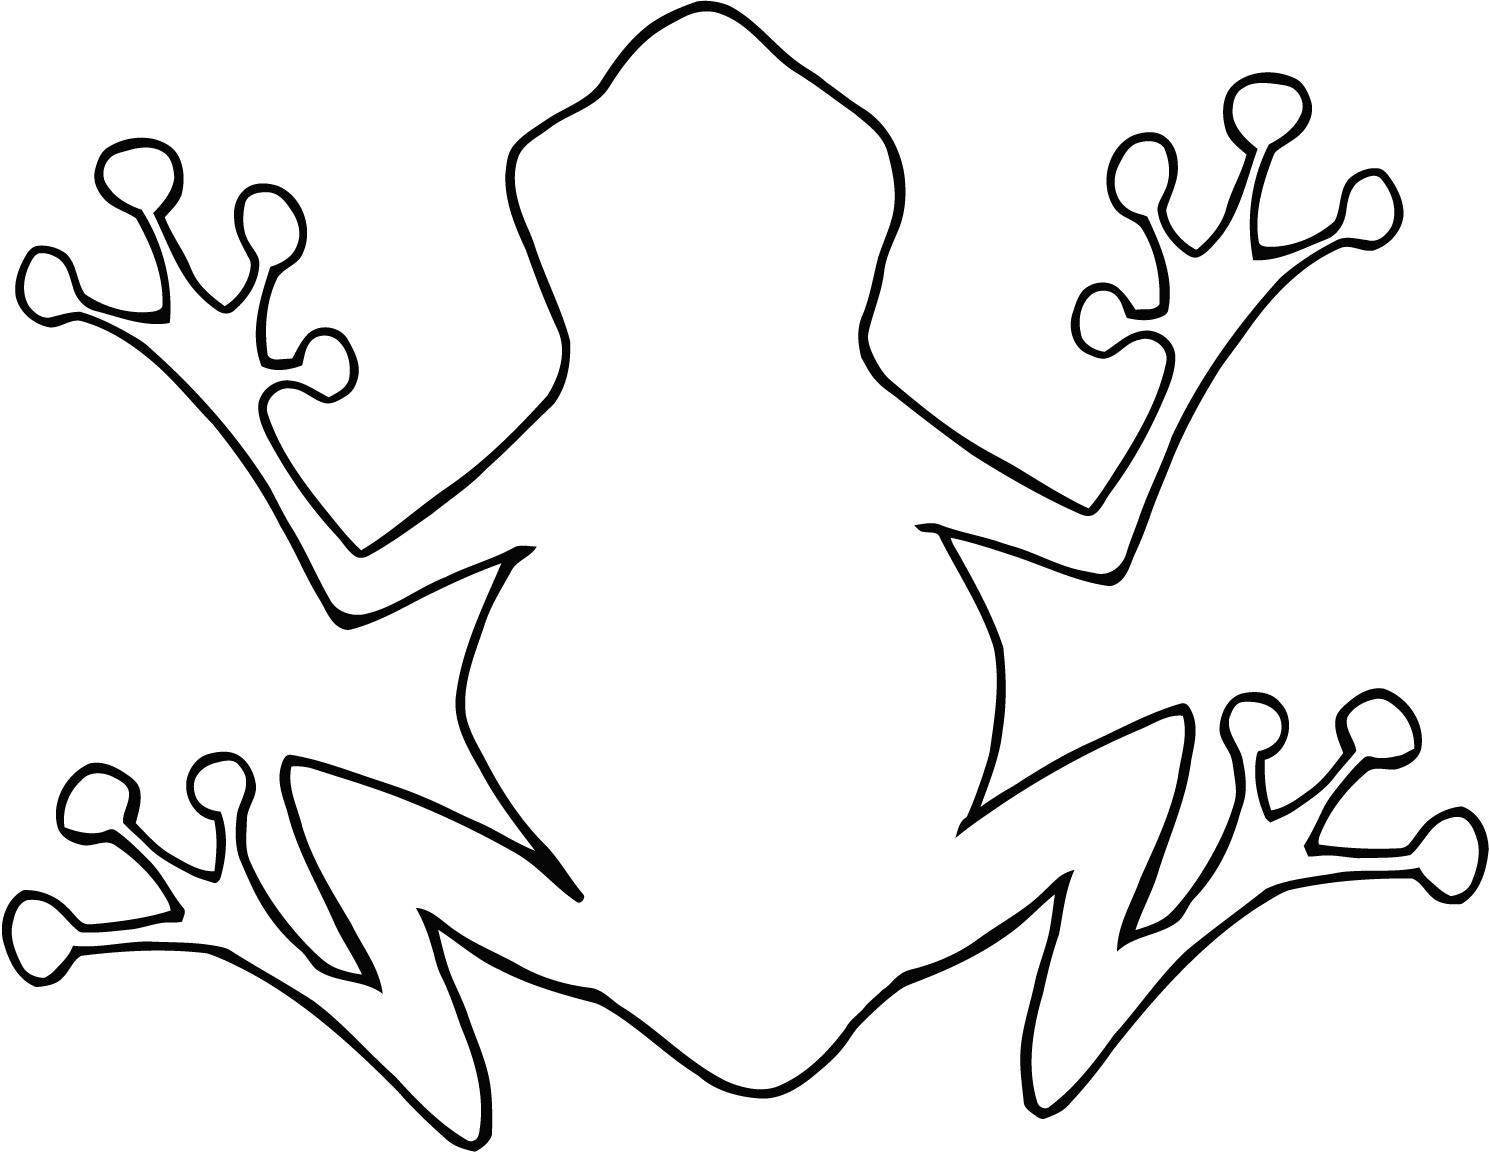 Co coloring book page template - Outline Frog For Kids Best Printable Coloring Sheet Of Cartoon Outline